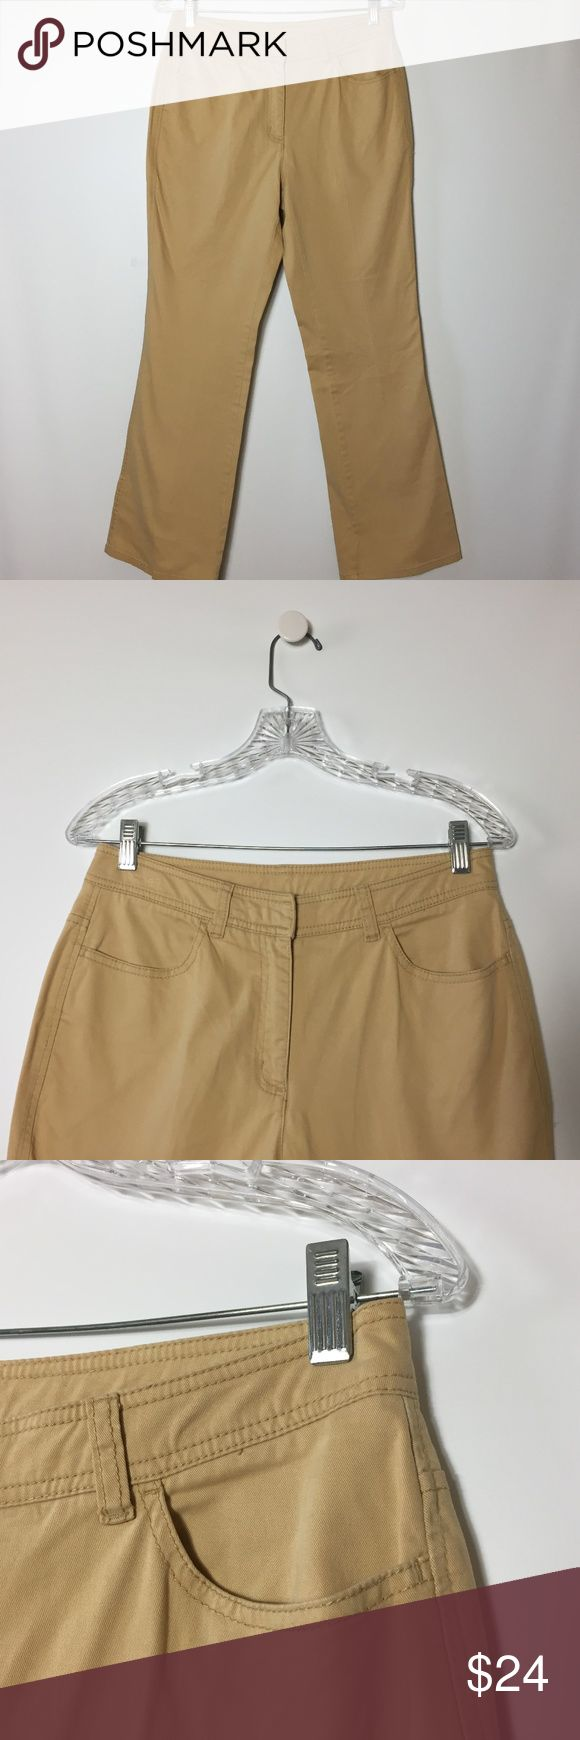 """CHICO'S WOMEN'S PANTS SIZE 0 SHORT CASUAL BEIGE CHICO'S  WOMEN'S  CASUAL SHORT BEIGE STRETCH SLACK PANTS  SIZE: 0 Short Color: Beige  Waist: 29"""" Rise: 10"""". Hips: 36"""" Inseam: 28"""" (A16) FOR ACCURATE SIZING MEASURE A PAIR OF YOUR CLOTHE WHILE FLAT AND COMPARE TO OUR SIZES above. Sizes listed are based on the item label. Item fit and sizing can vary by Manufacture. Chico's Pants"""